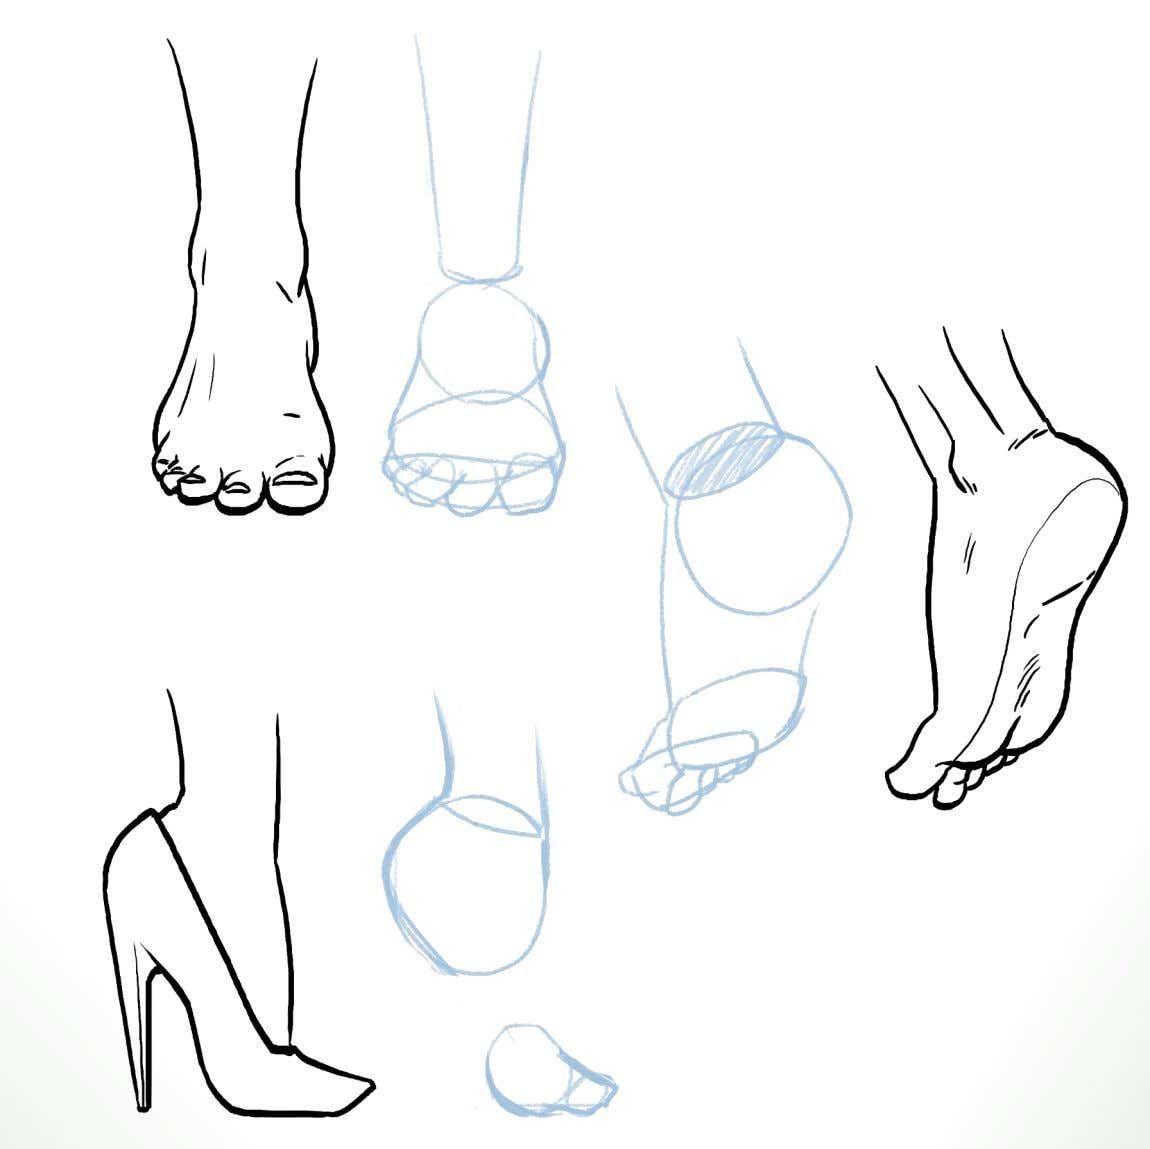 Exercise 10: Reproduce the details of the feet on the provided construction work 11